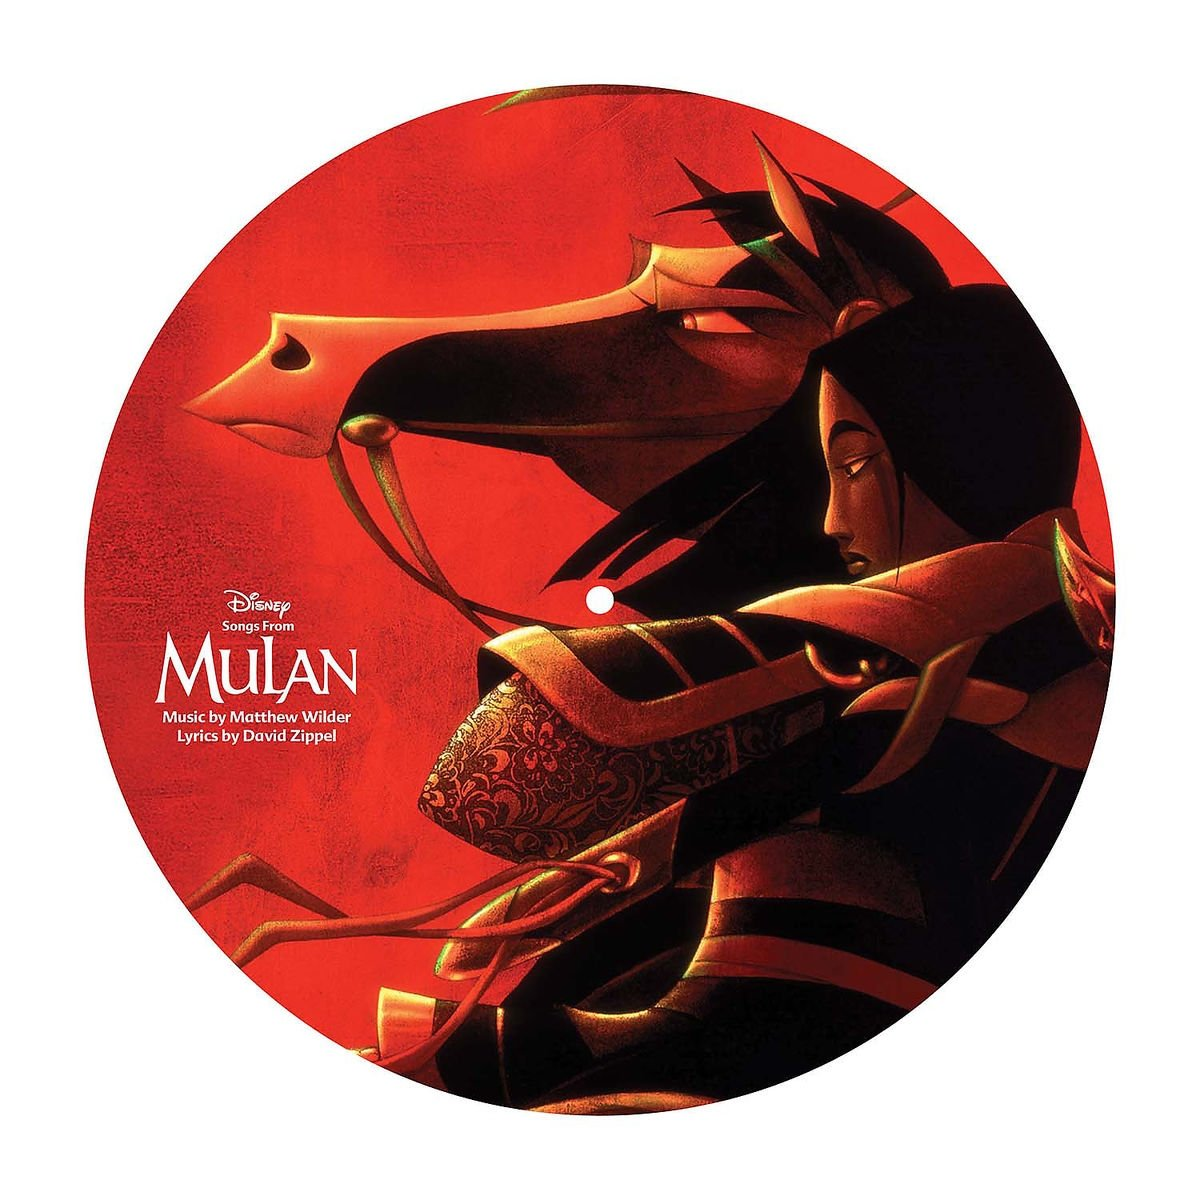 Songs From Mulan [LP][Picture Disc] by Walt Disney Records (Image #2)